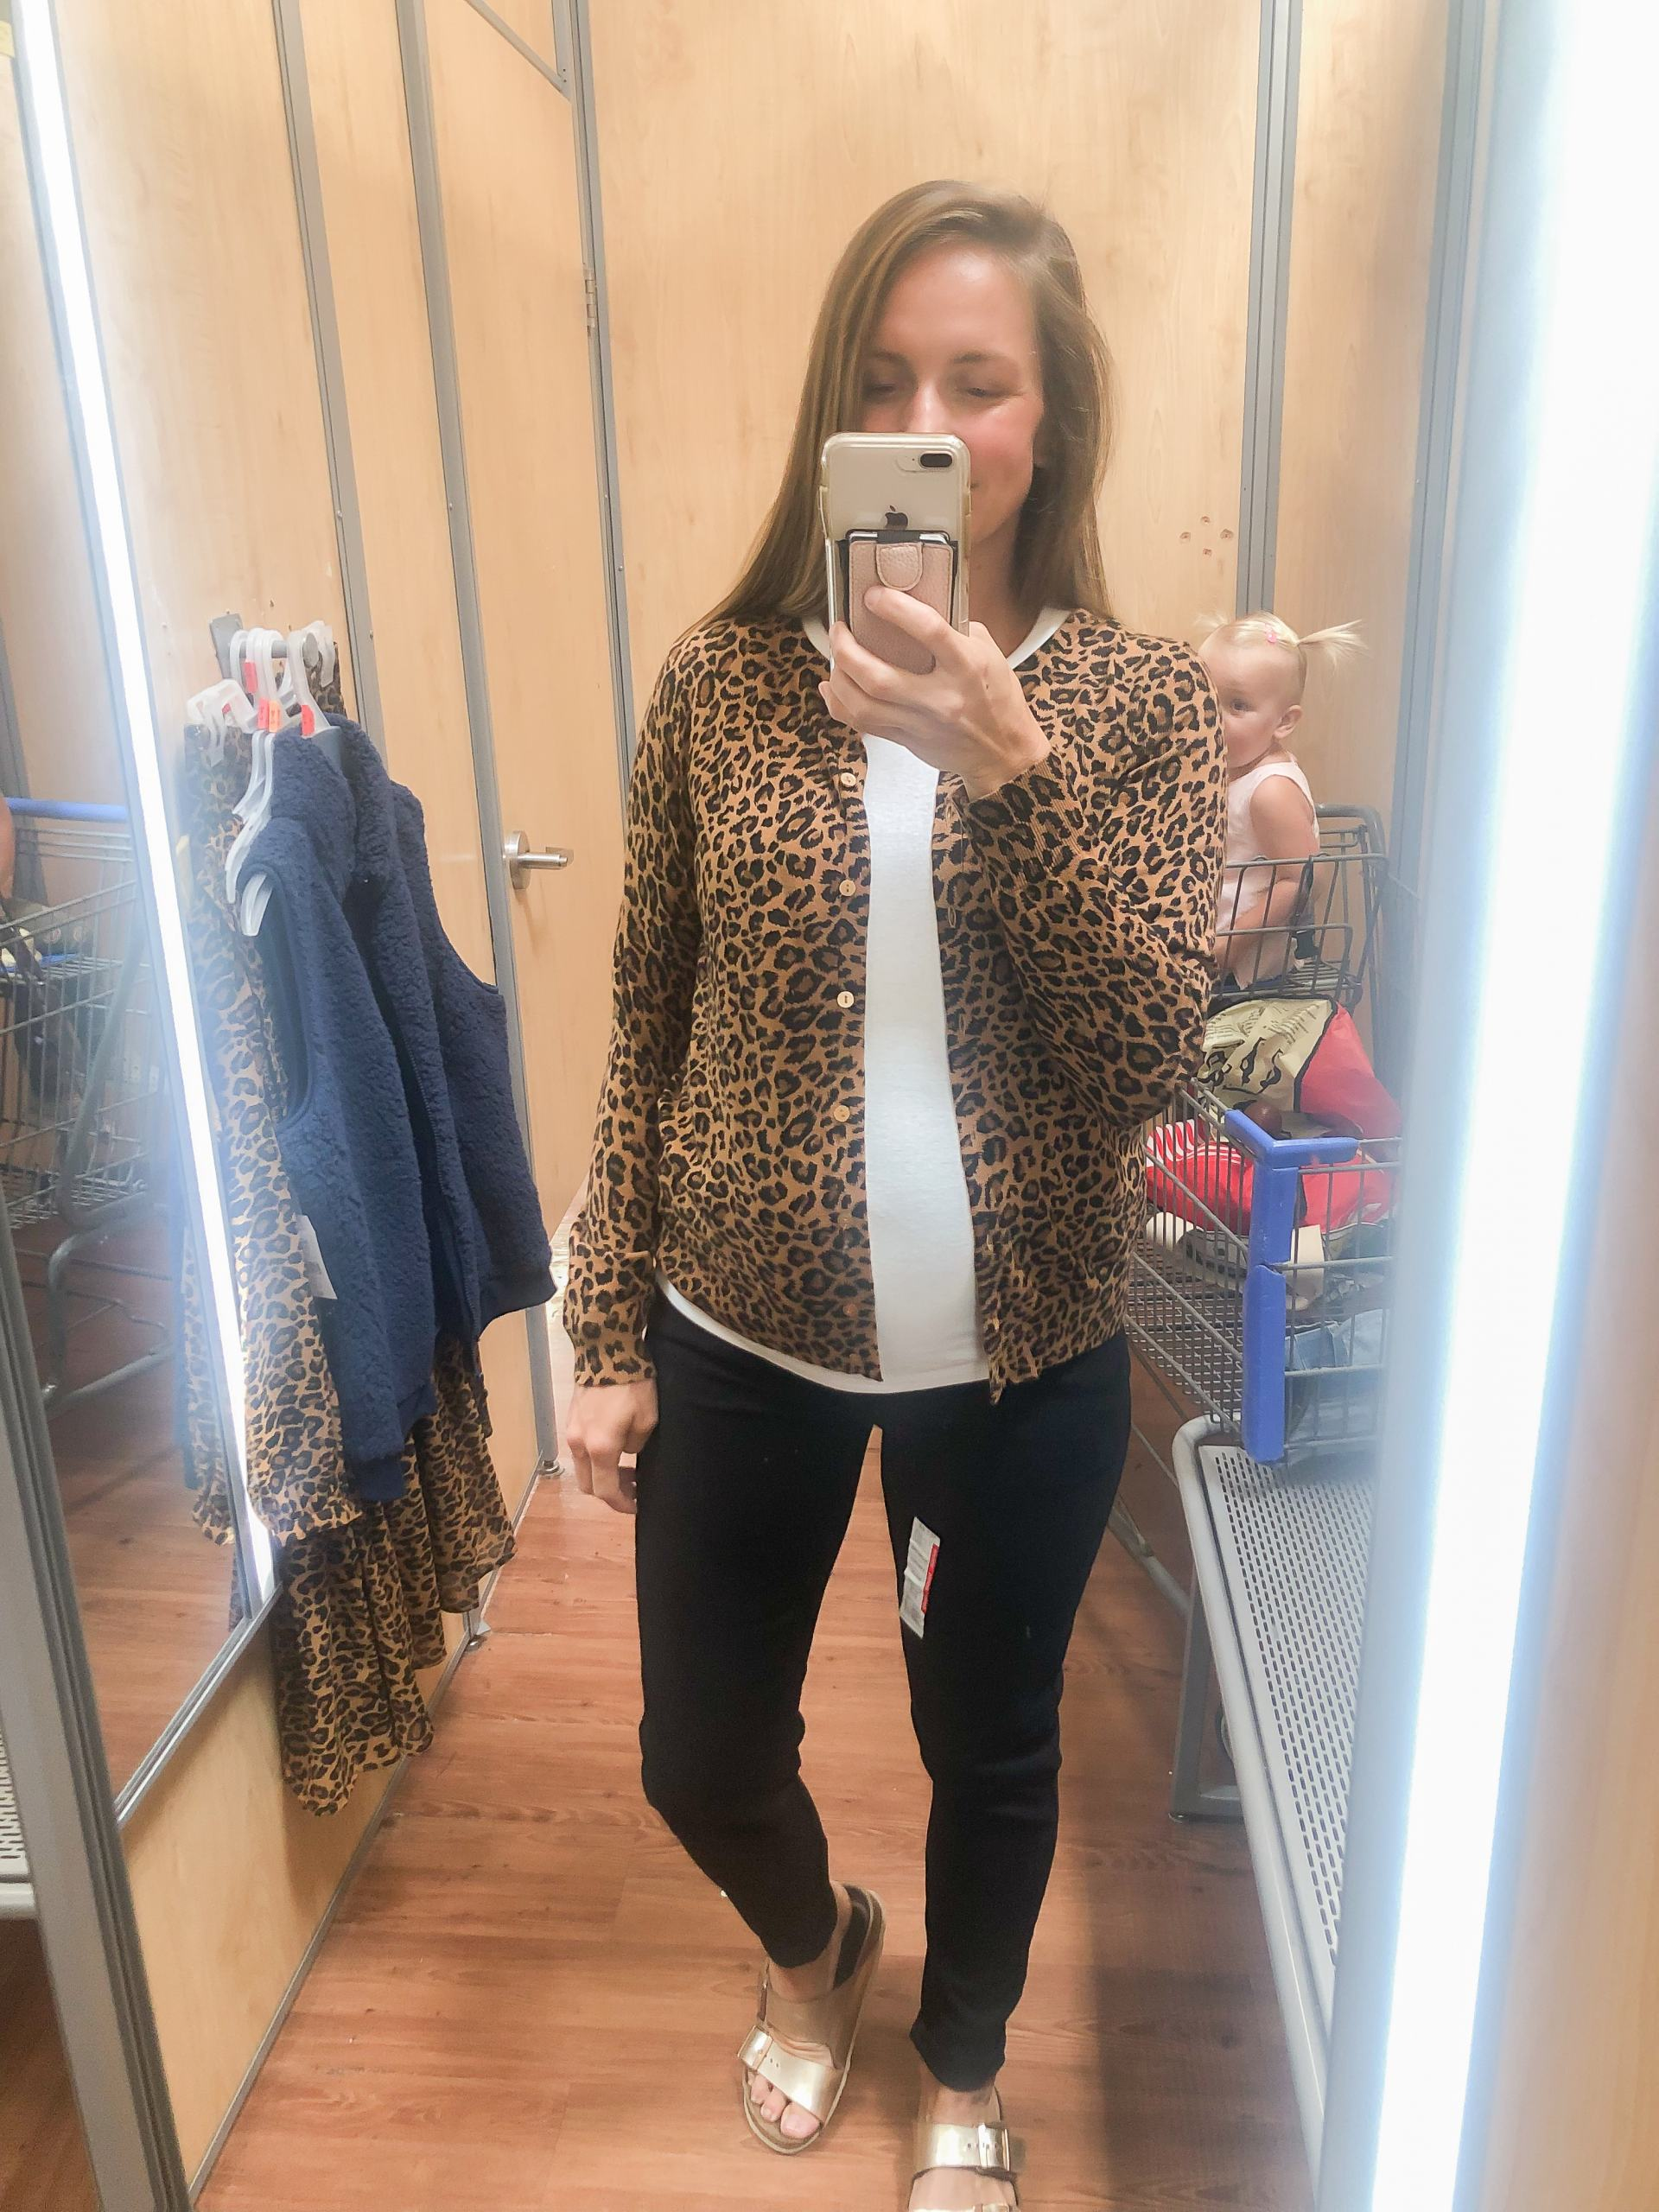 maternity style - affordable fashion - walmart fashion - fall outfit ideas - fall fashion inspo - walmart try on - walmart fall clothing - budget outfits - style on a budget - walmart blogger - leopard cardigan - black maternity jeans